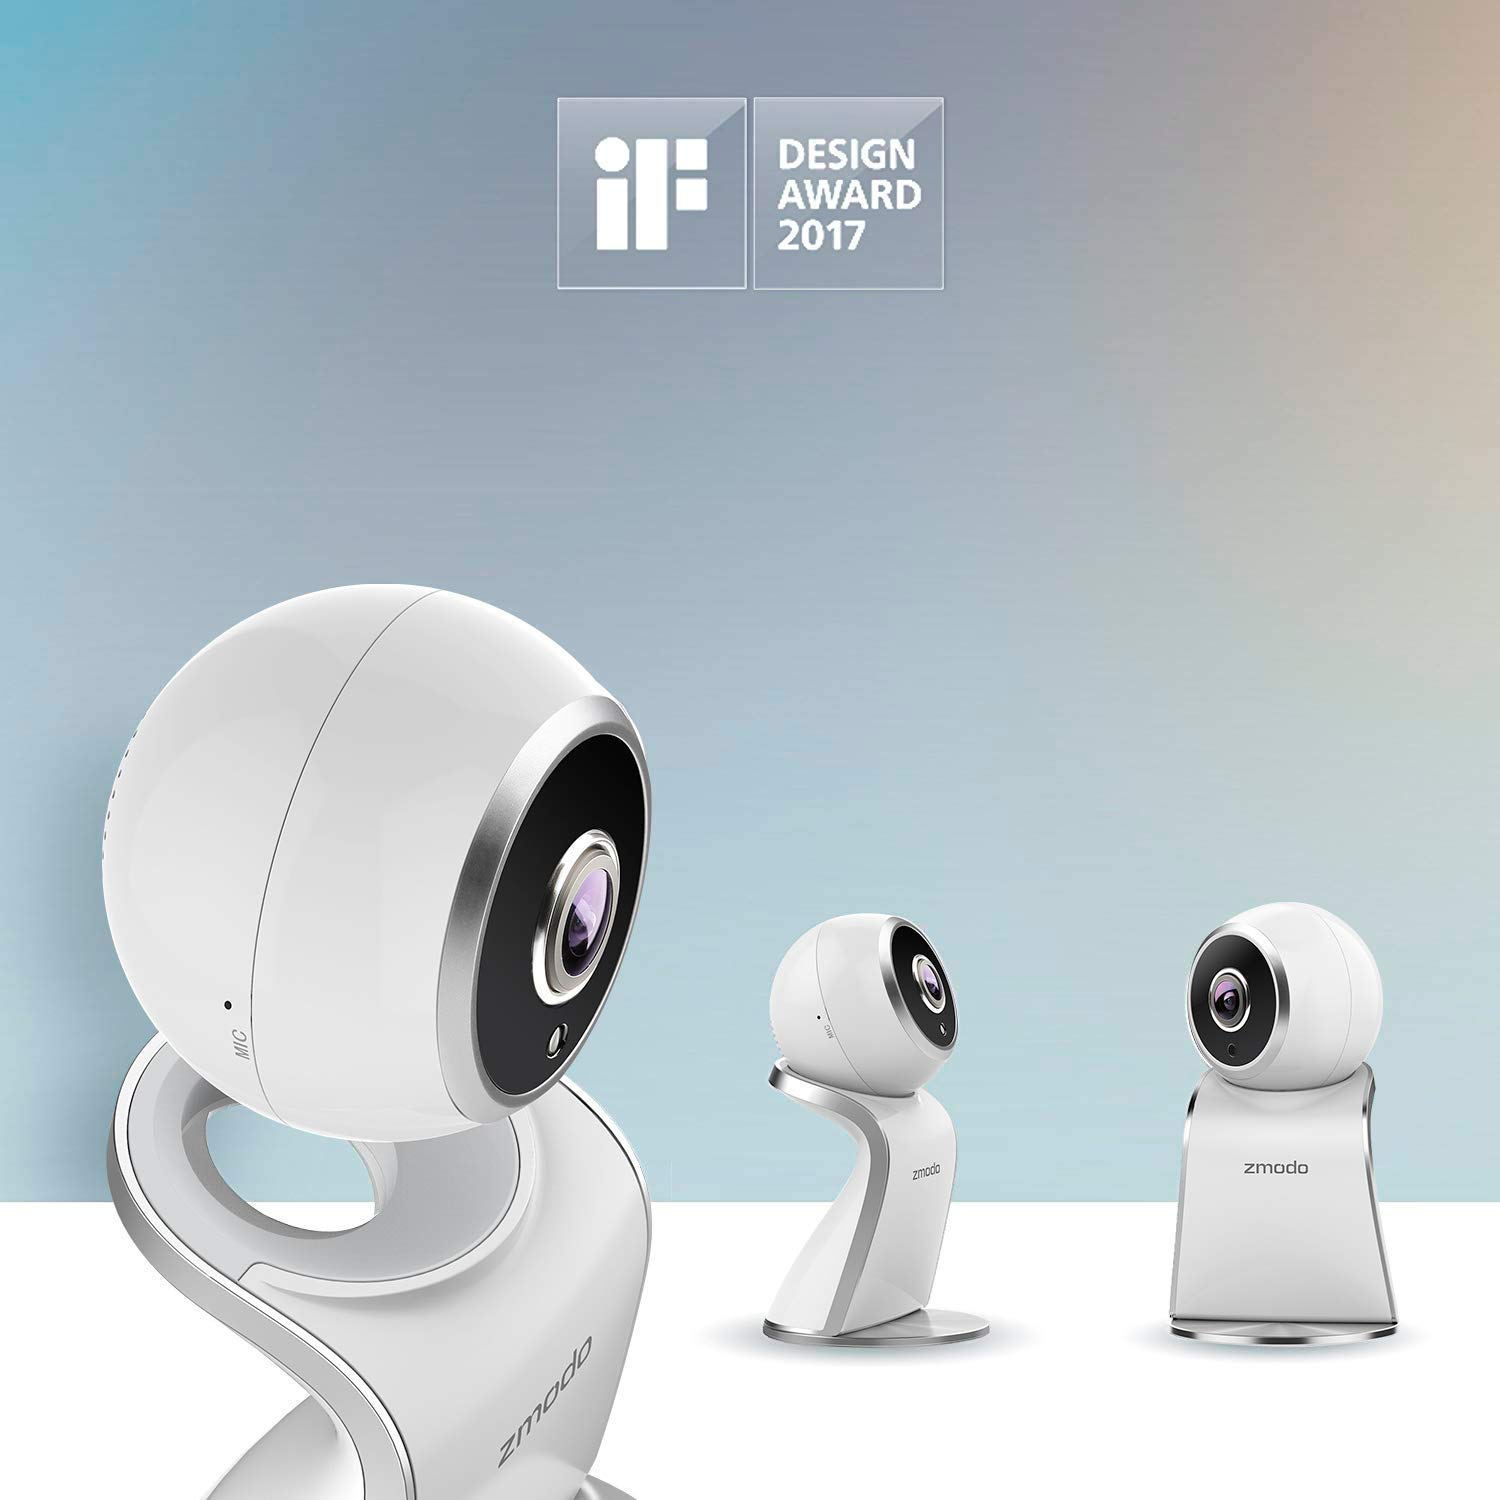 2 Pack Two Way Audio Motion Detection Compatible with Alexa Night Vision Zmodo Sight 180 Home Security Camera Full HD 1080p Wireless Indoor IP Camera System with 180 Degree Viewing Angle